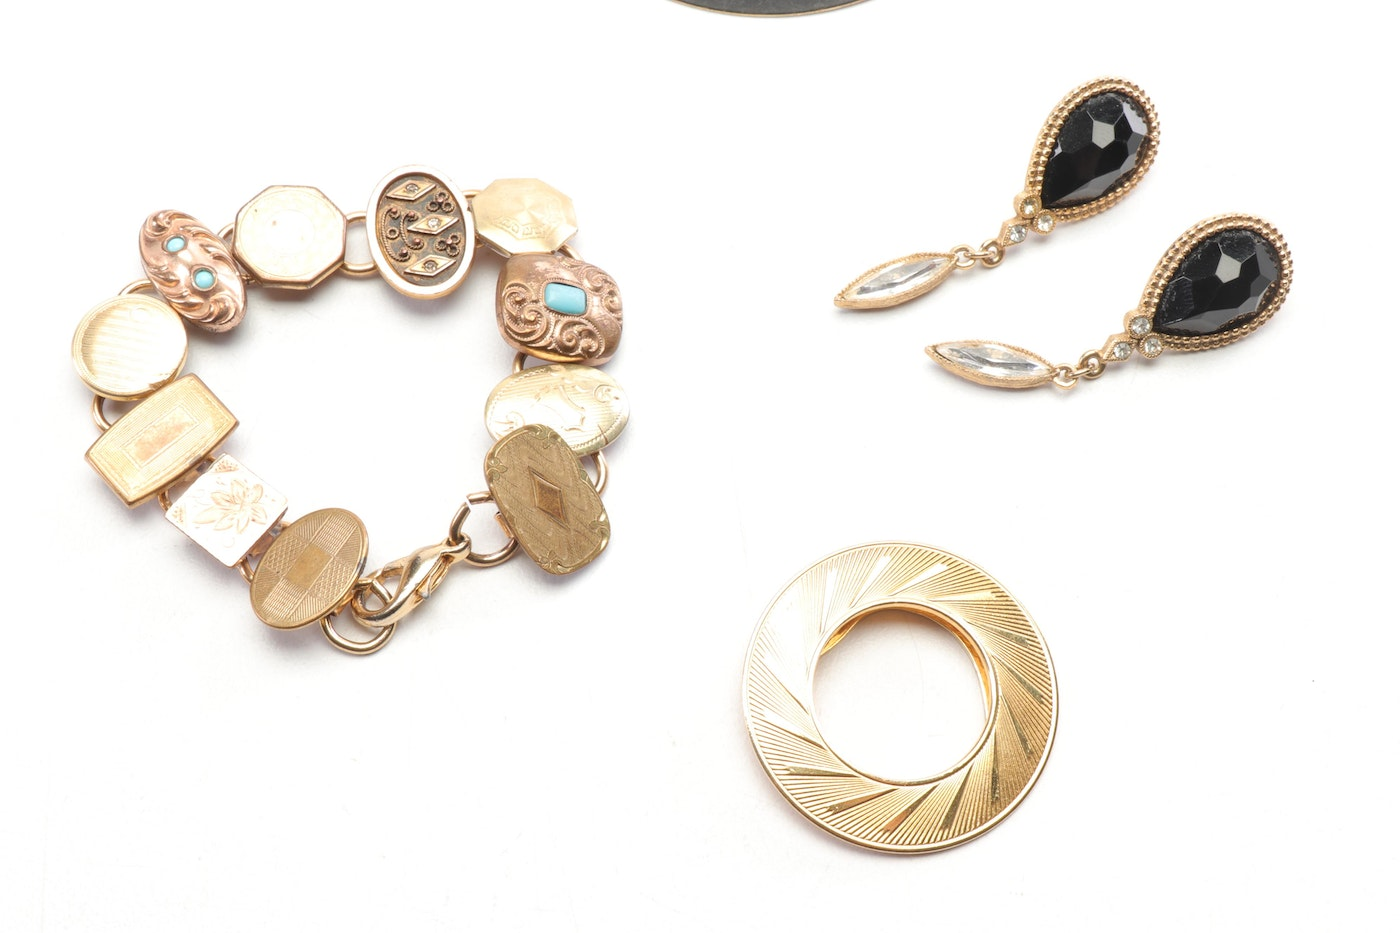 Gold-Tone Assorted Jewelry Including Lieba Pin